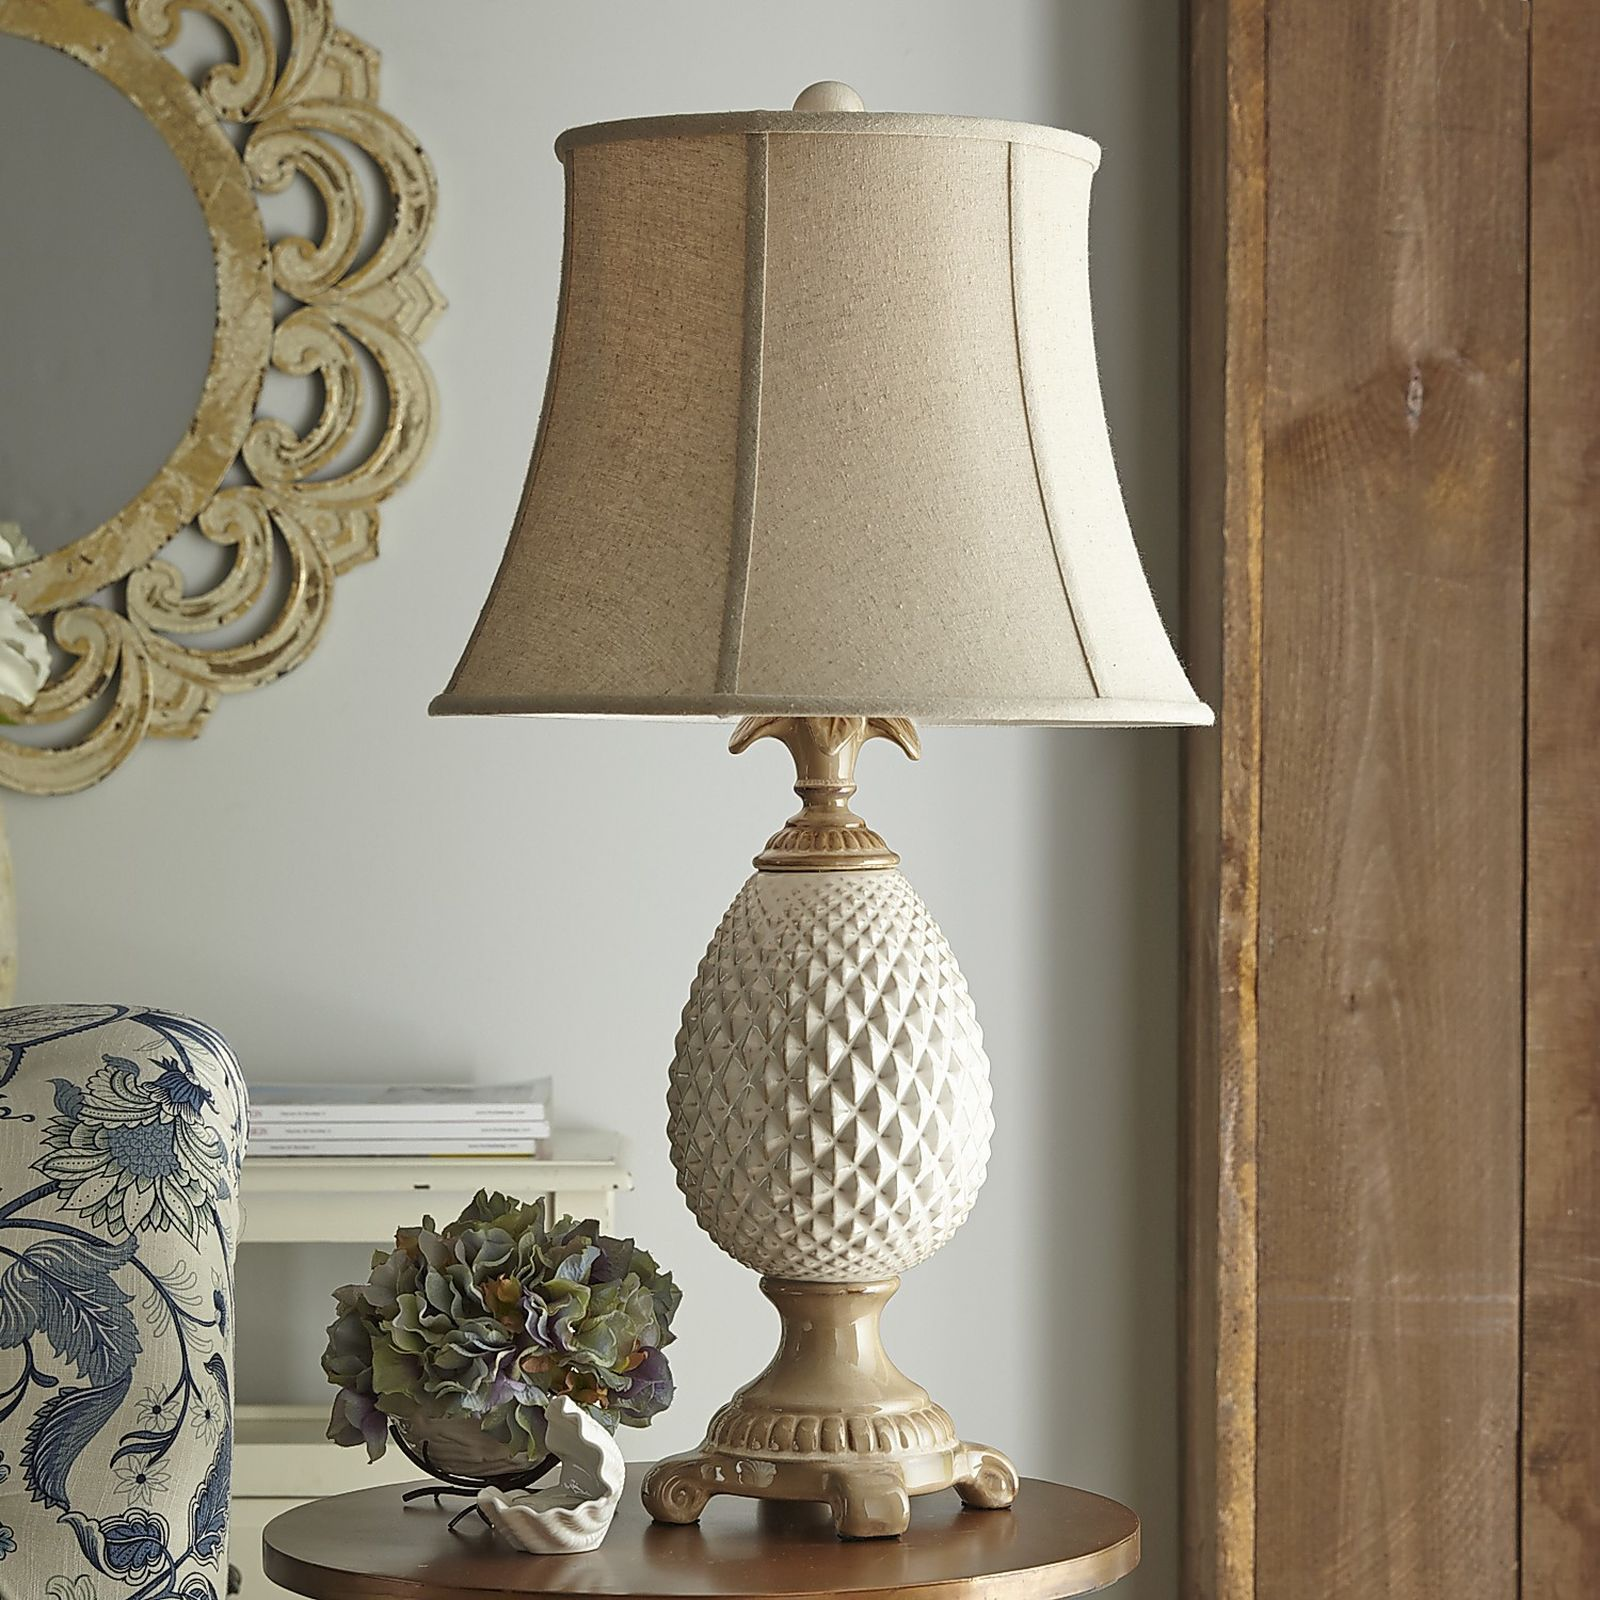 A symbol of hospitality since the 18th century, this pineapple lamp extends a serene welcome to guests. Equally at home in refined or casual decor, it's cast in shades of antiqued porcelain, stands square on four curled feet and is fitted with an unbleached linen shade and sprouting finial. Sweet.